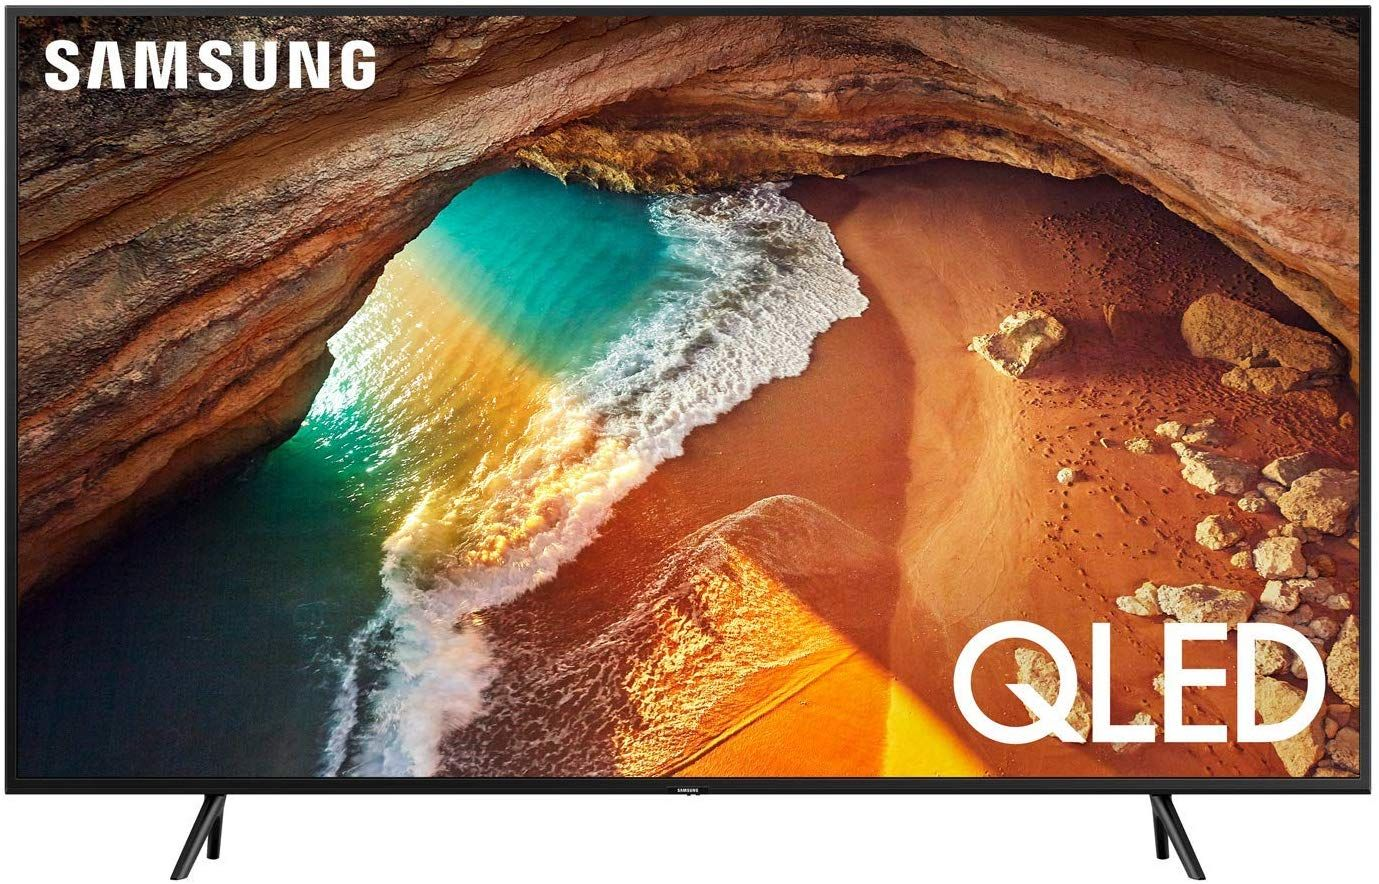 Samsung Flat 49-Inch QLED 4K Q60 Series Ultra HD Smart TV with HDR and Alexa Compatibility (2019 Model)